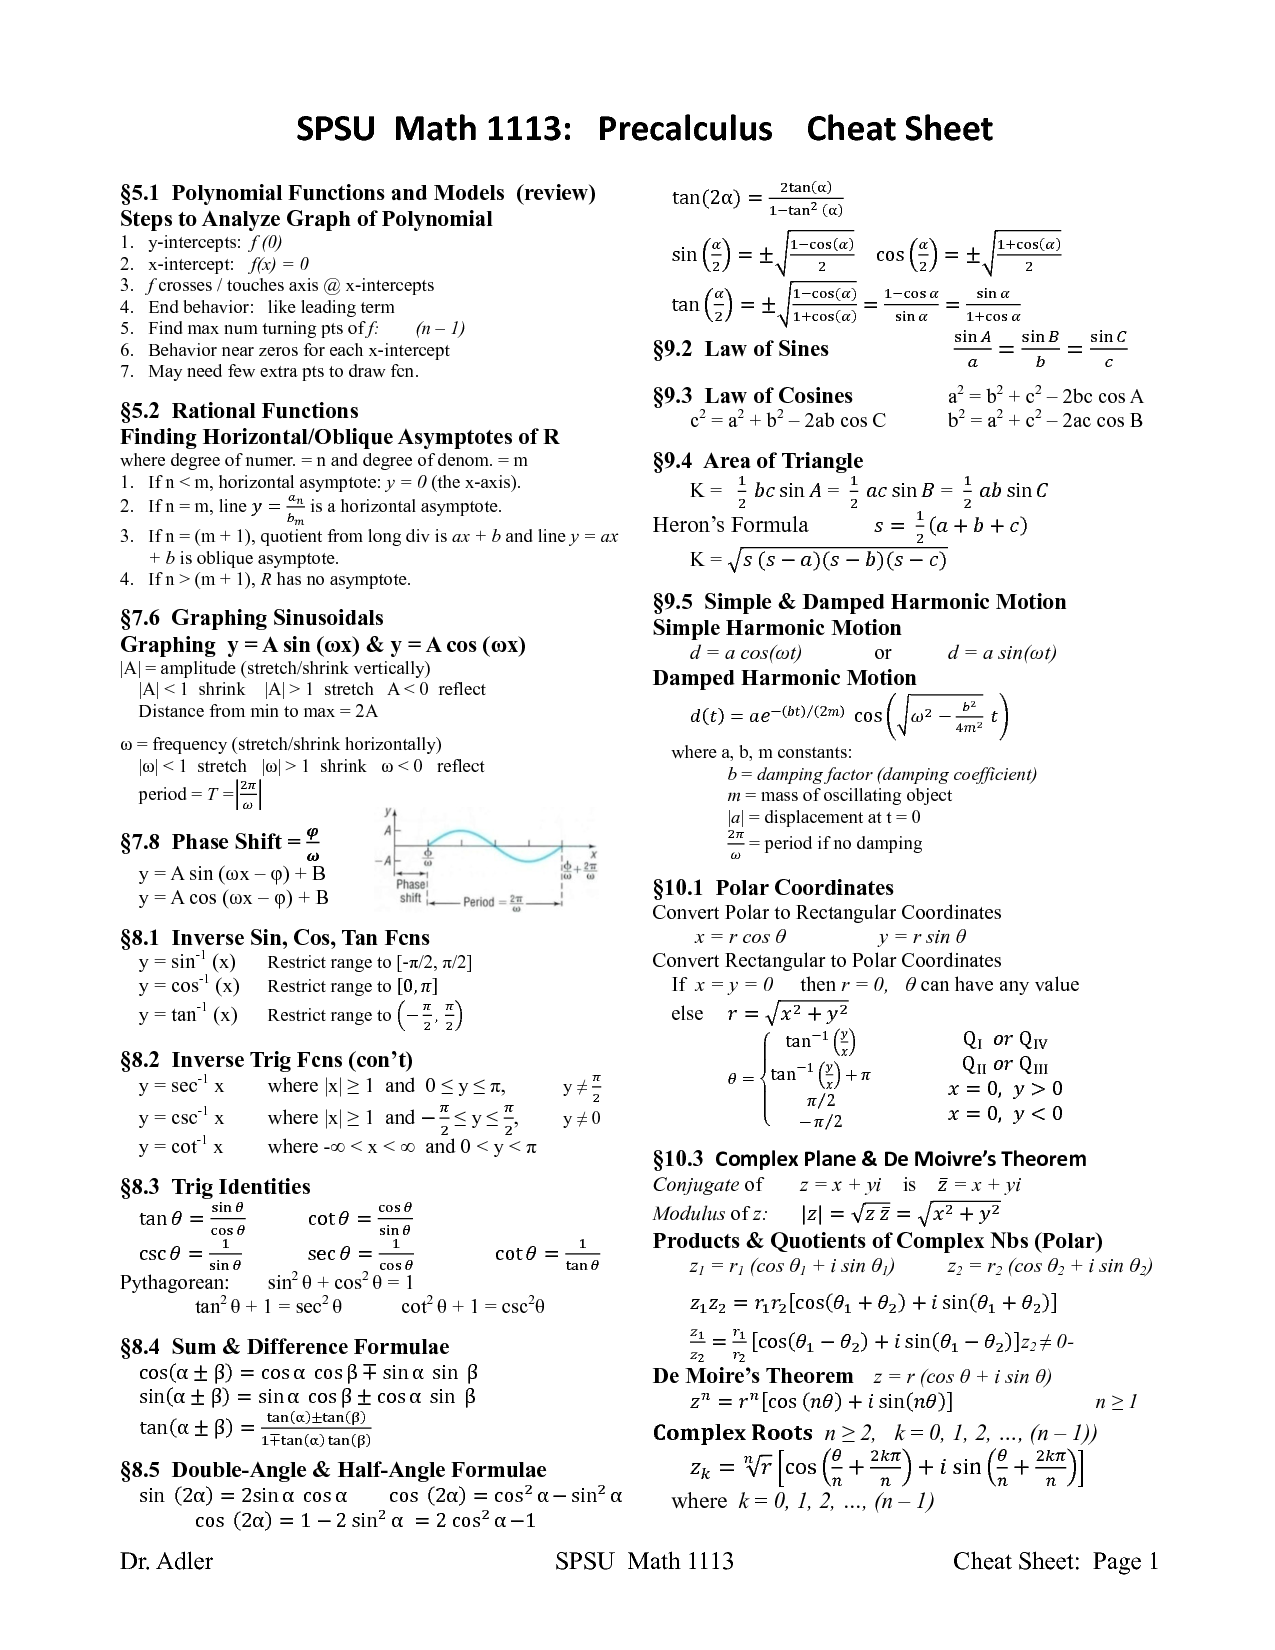 spsu math 1113 precalculus cheat sheet pdf pdf higher ed precalculus